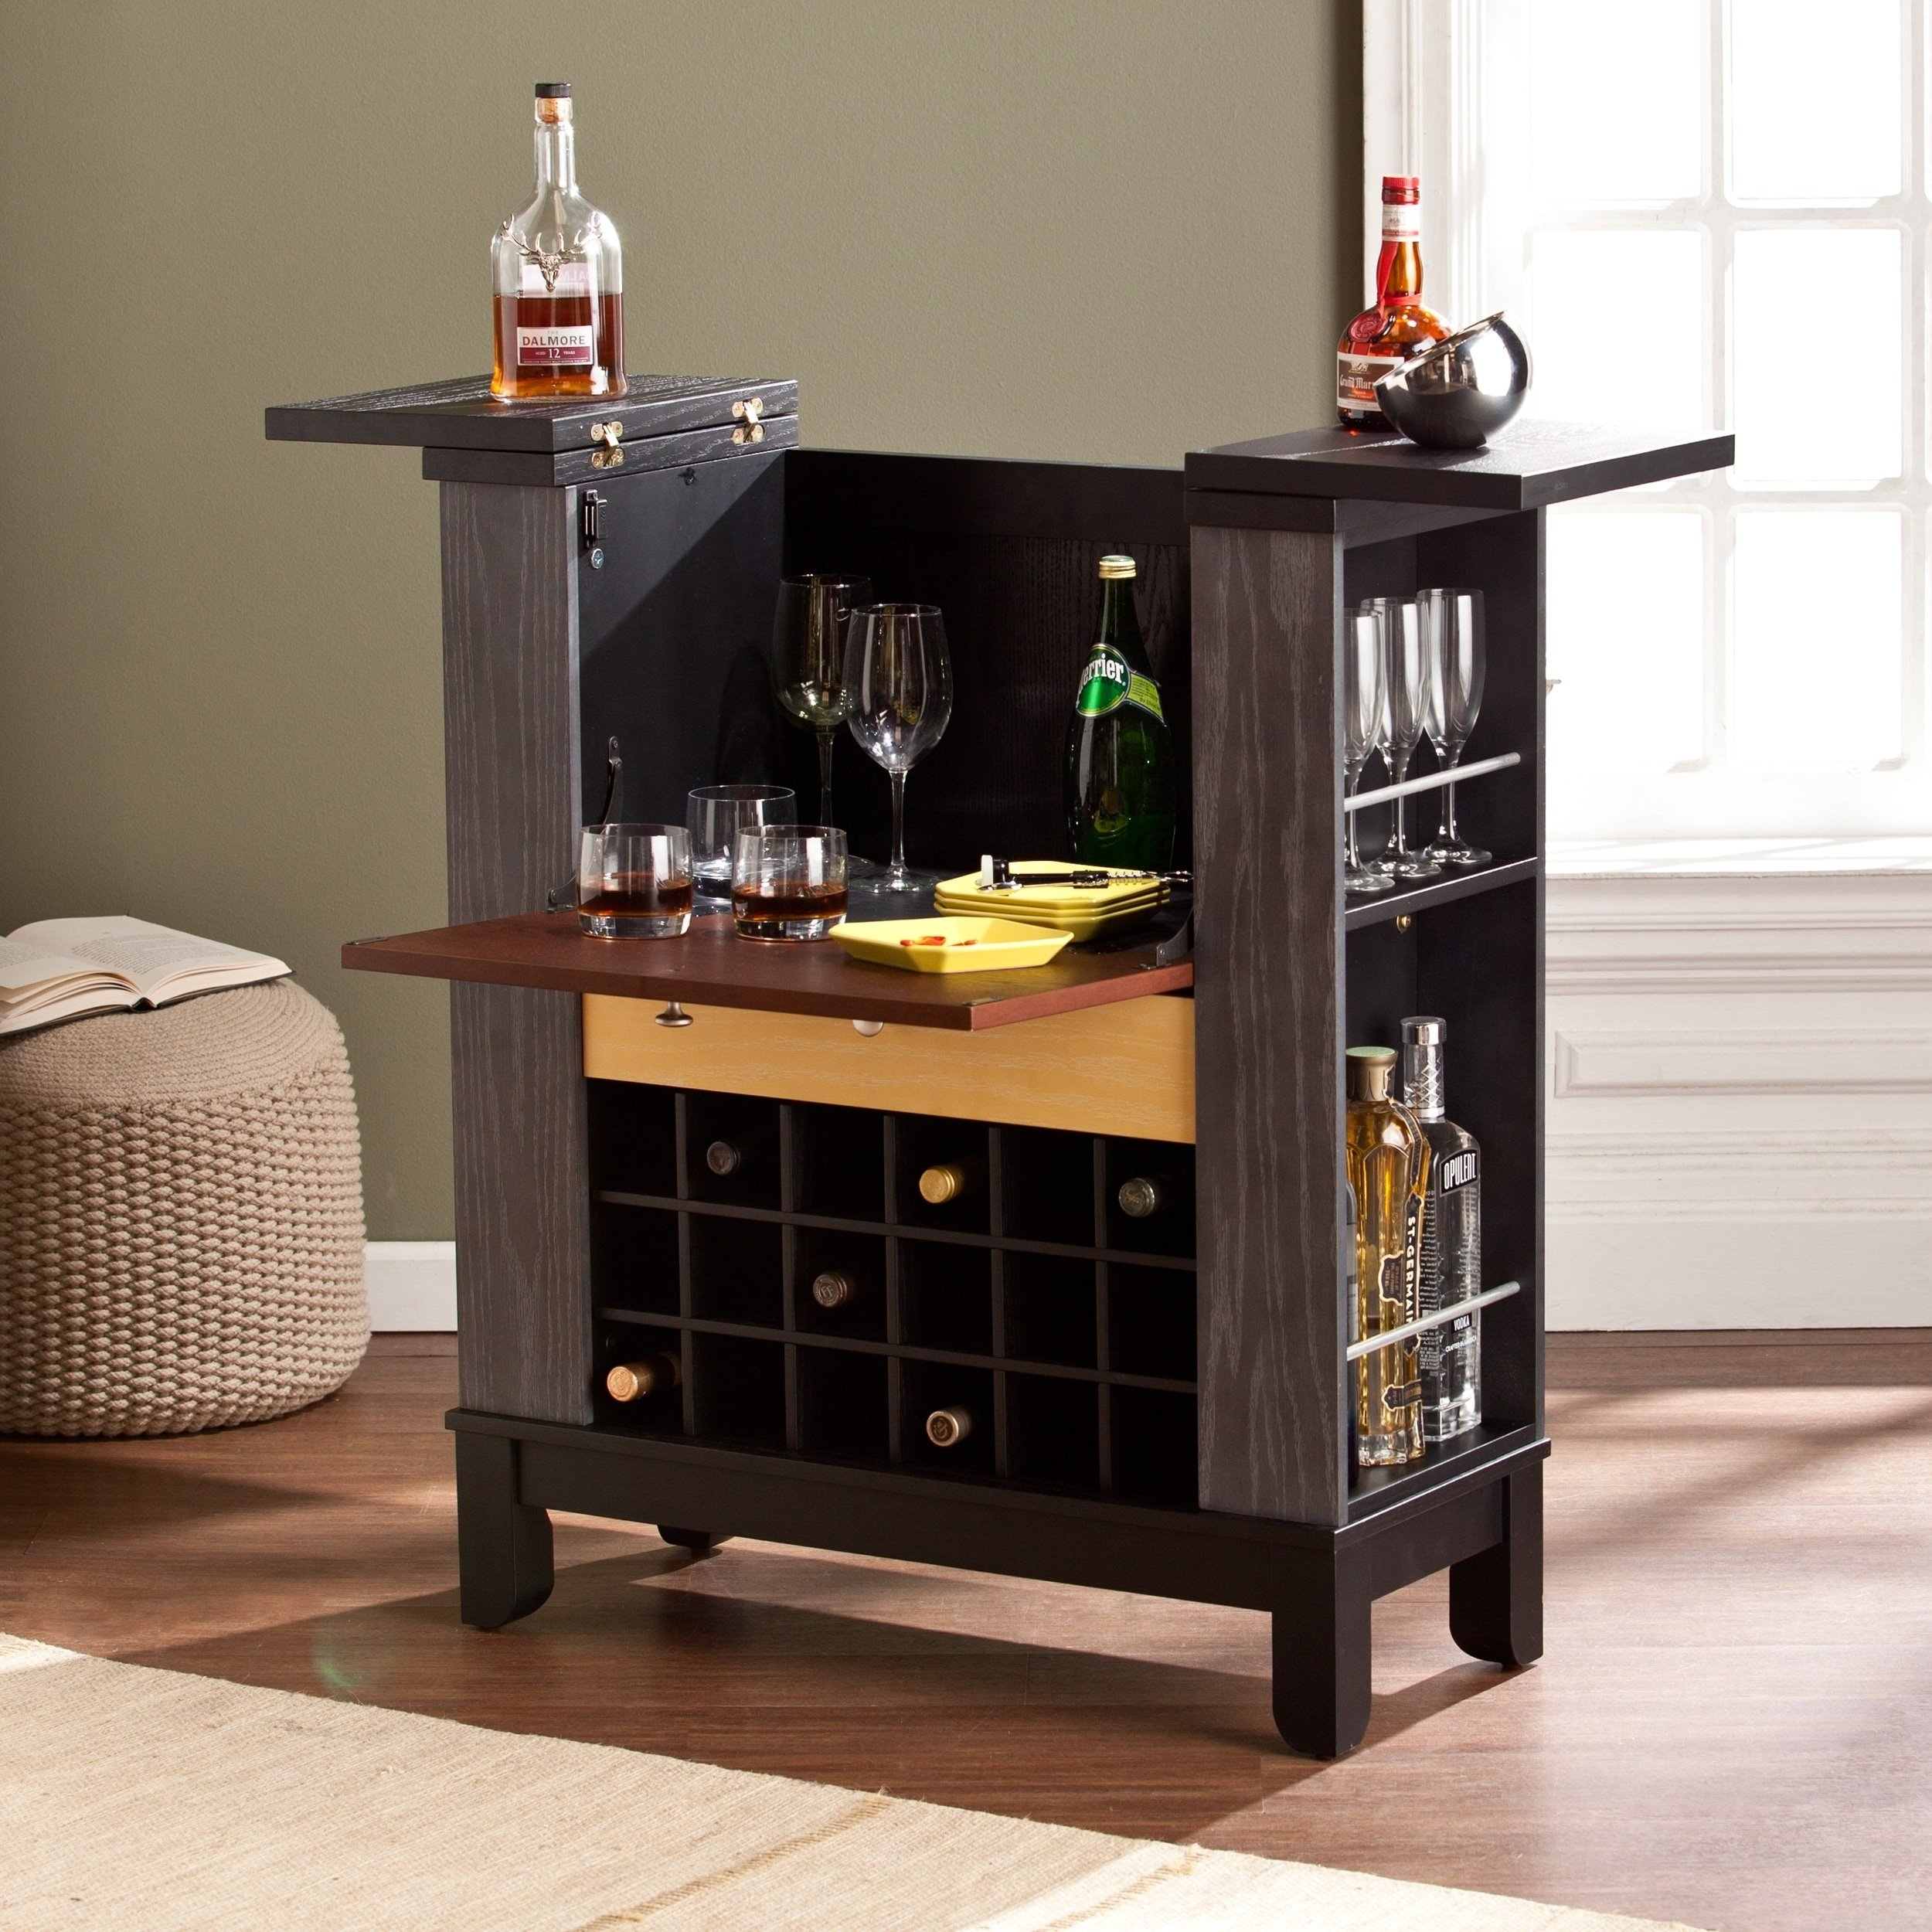 strick bolton heywood wine bar cabinet free accent table with rack shipping today outdoor patio and chairs decorative corners xmas runners bedroom desk console decor round